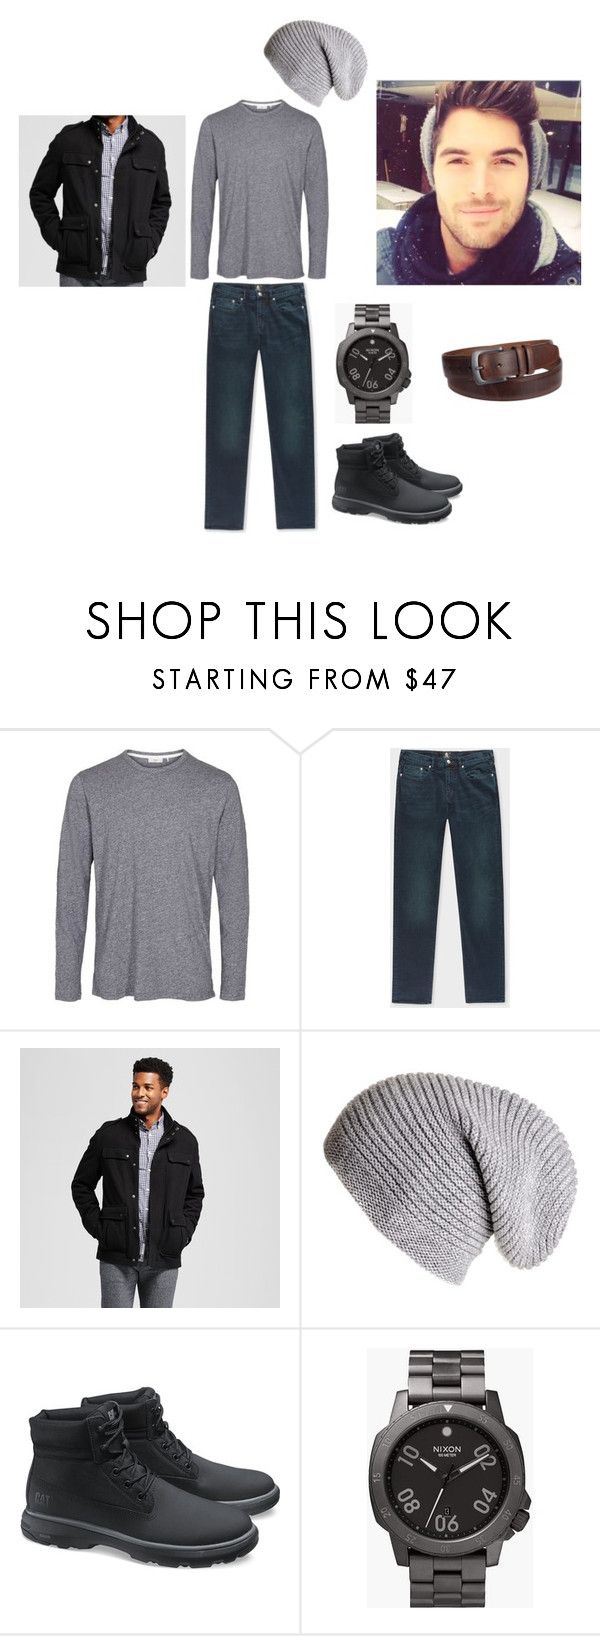 """Luca Bae - Fundraiser"" by logikitty on Polyvore featuring PS Paul Smith, Black, Caterpillar, Nixon, Croft & Barrow, men's fashion and menswear"